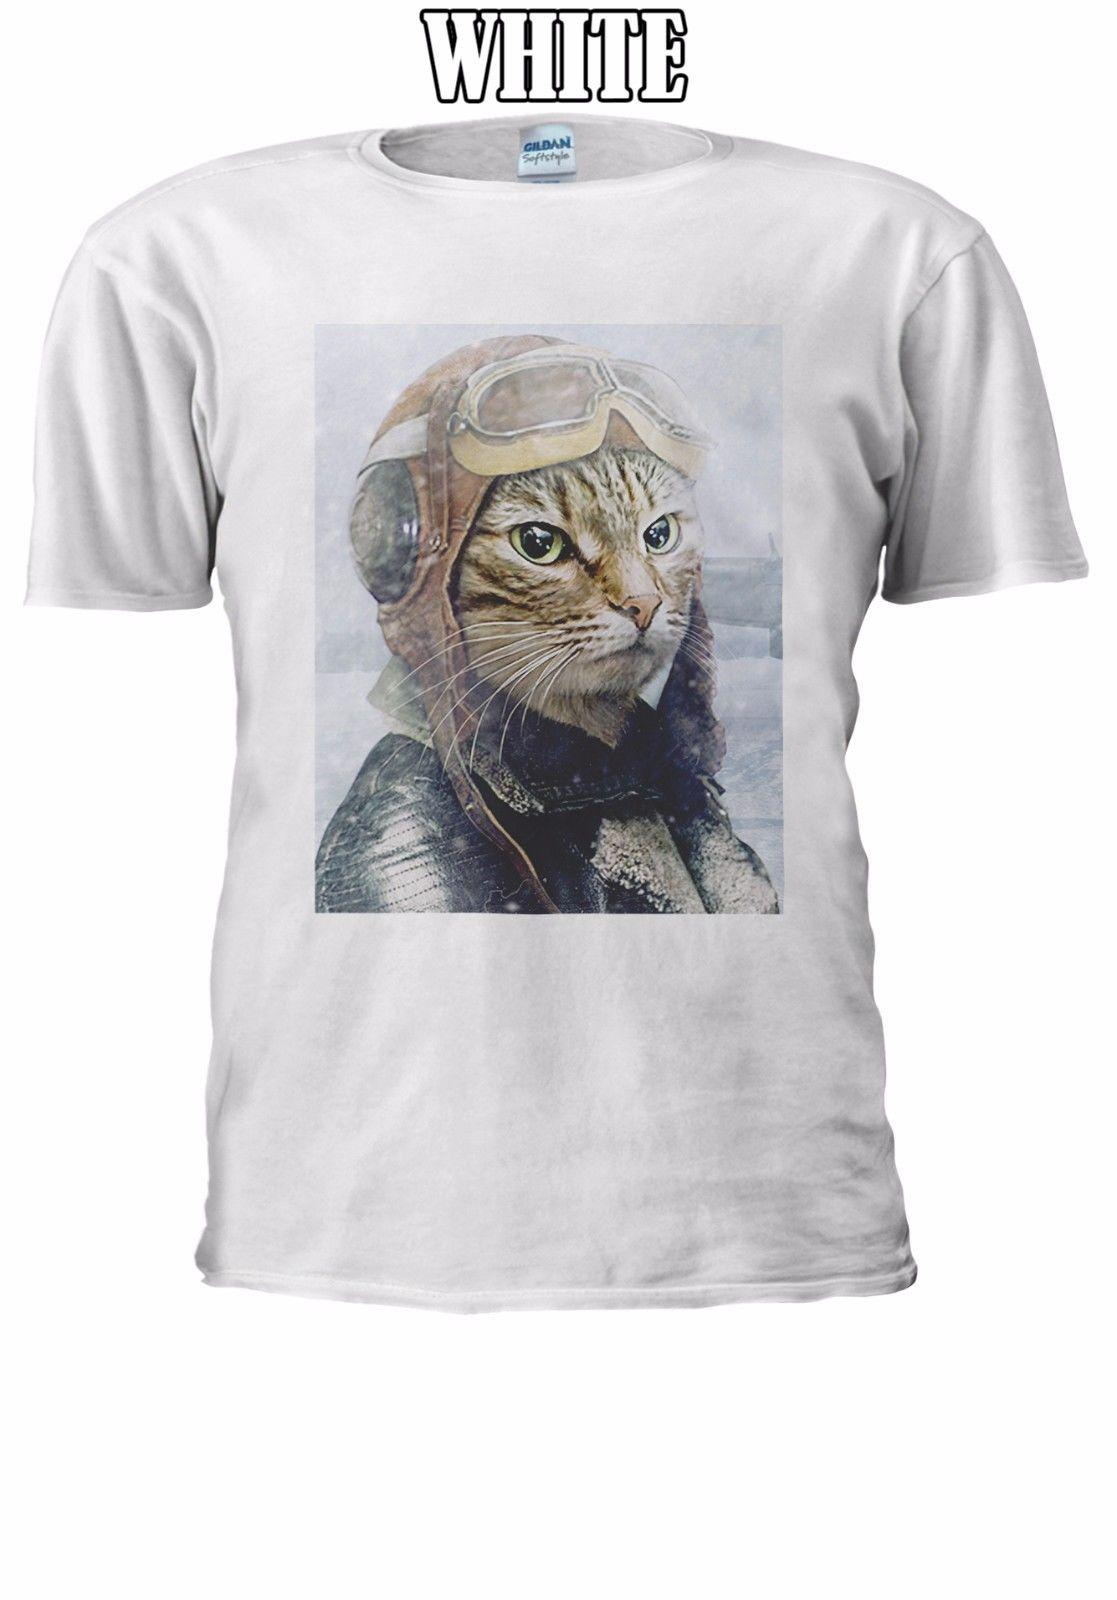 Cat Pilot Cool Funny Army T-shirt Vest Tank Top Men Women Unisex 2604 mens pride dark t-shirt white black grey red trousers tshirt